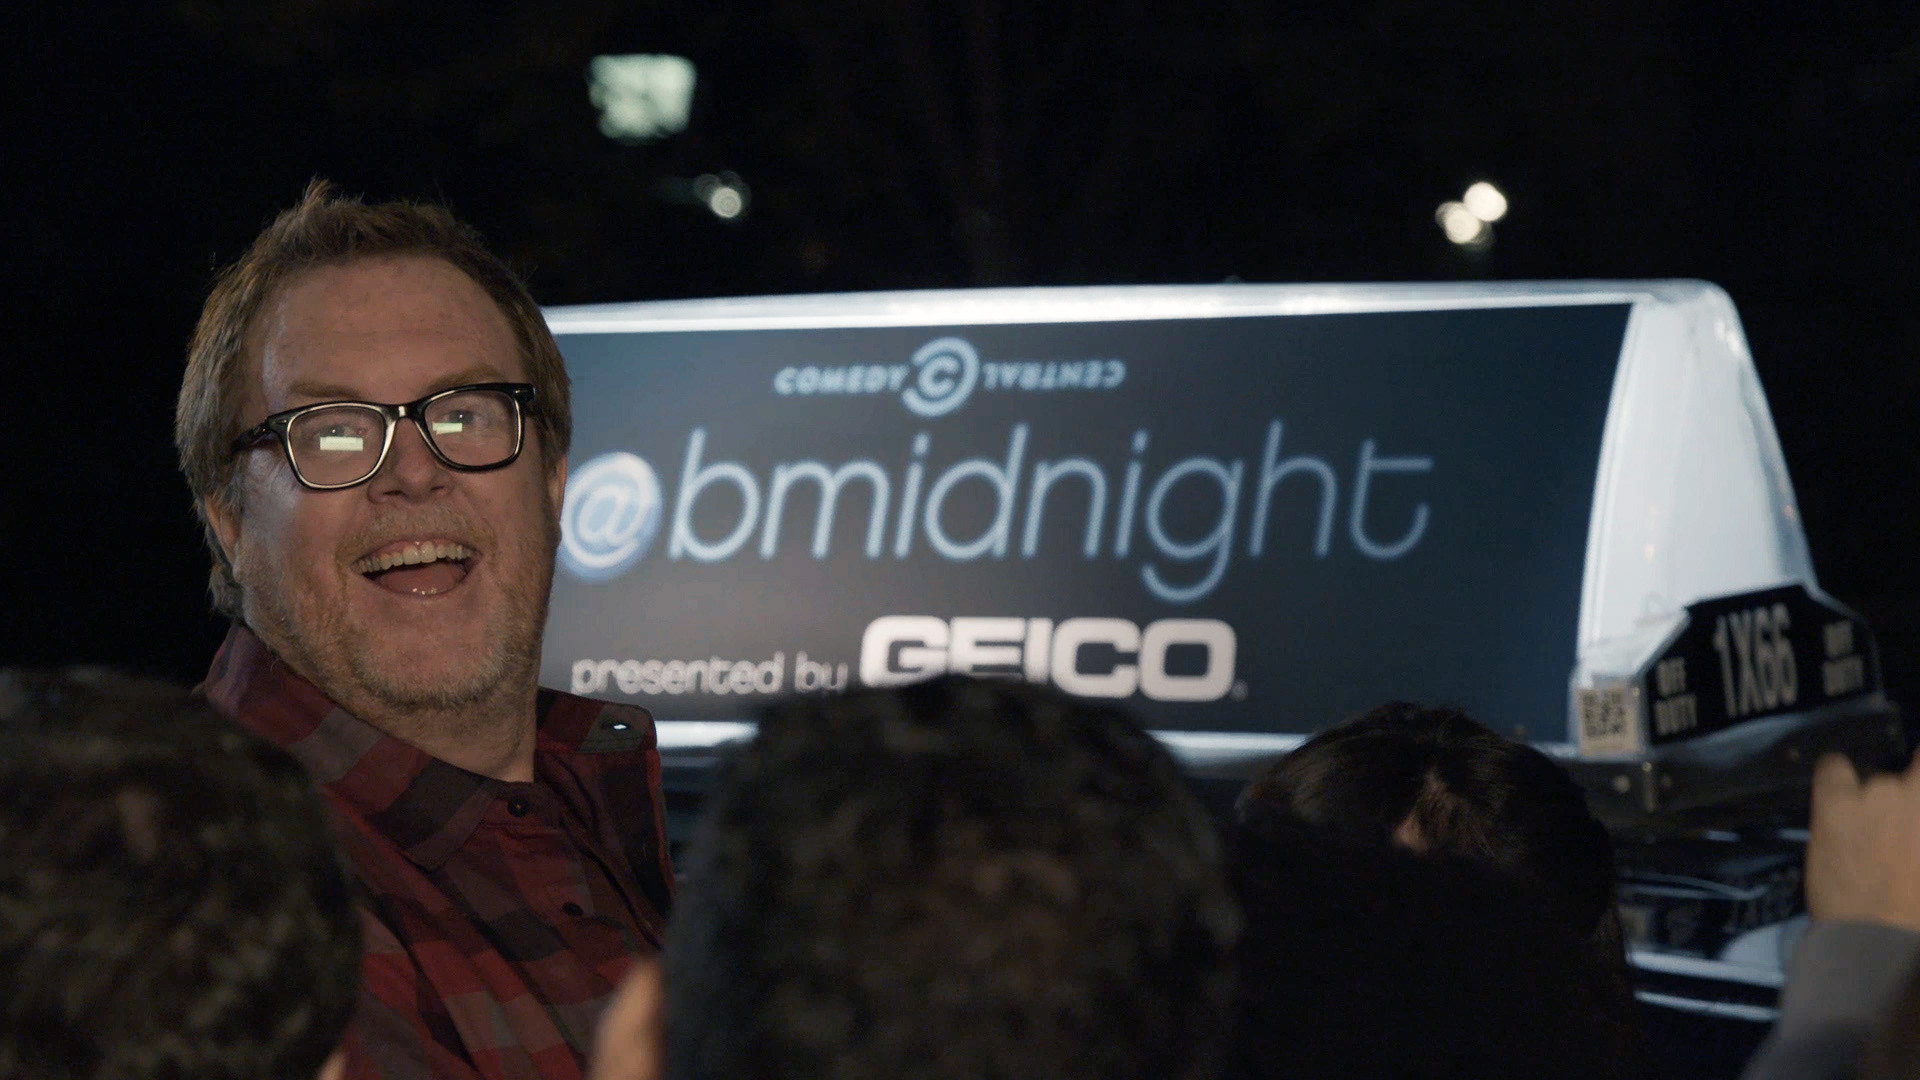 @MIDNIGHT HITS THE STREETS - WELCOME TO C@BMIDNIGHT